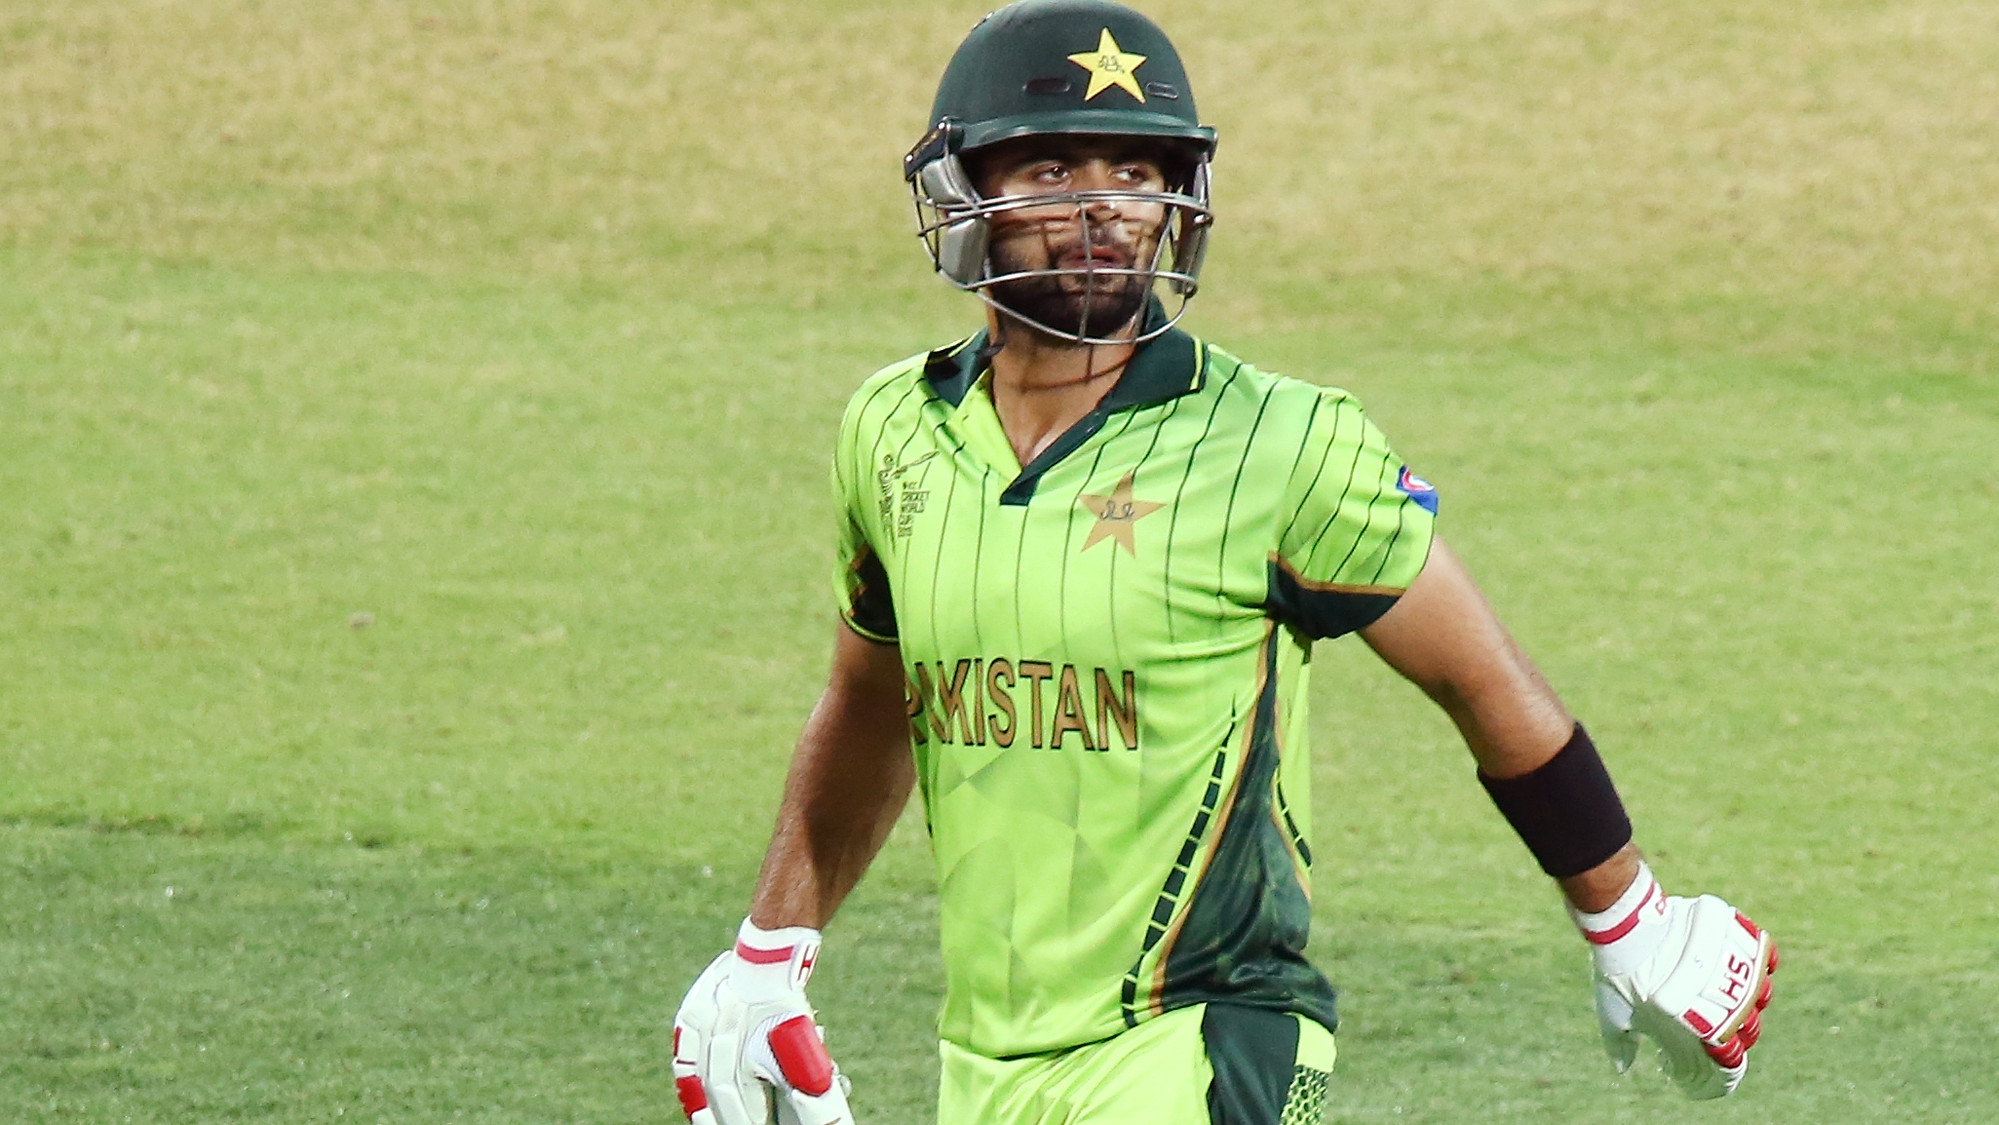 Ahmad Shahzad got banned for mistakenly consuming his mother's medicine